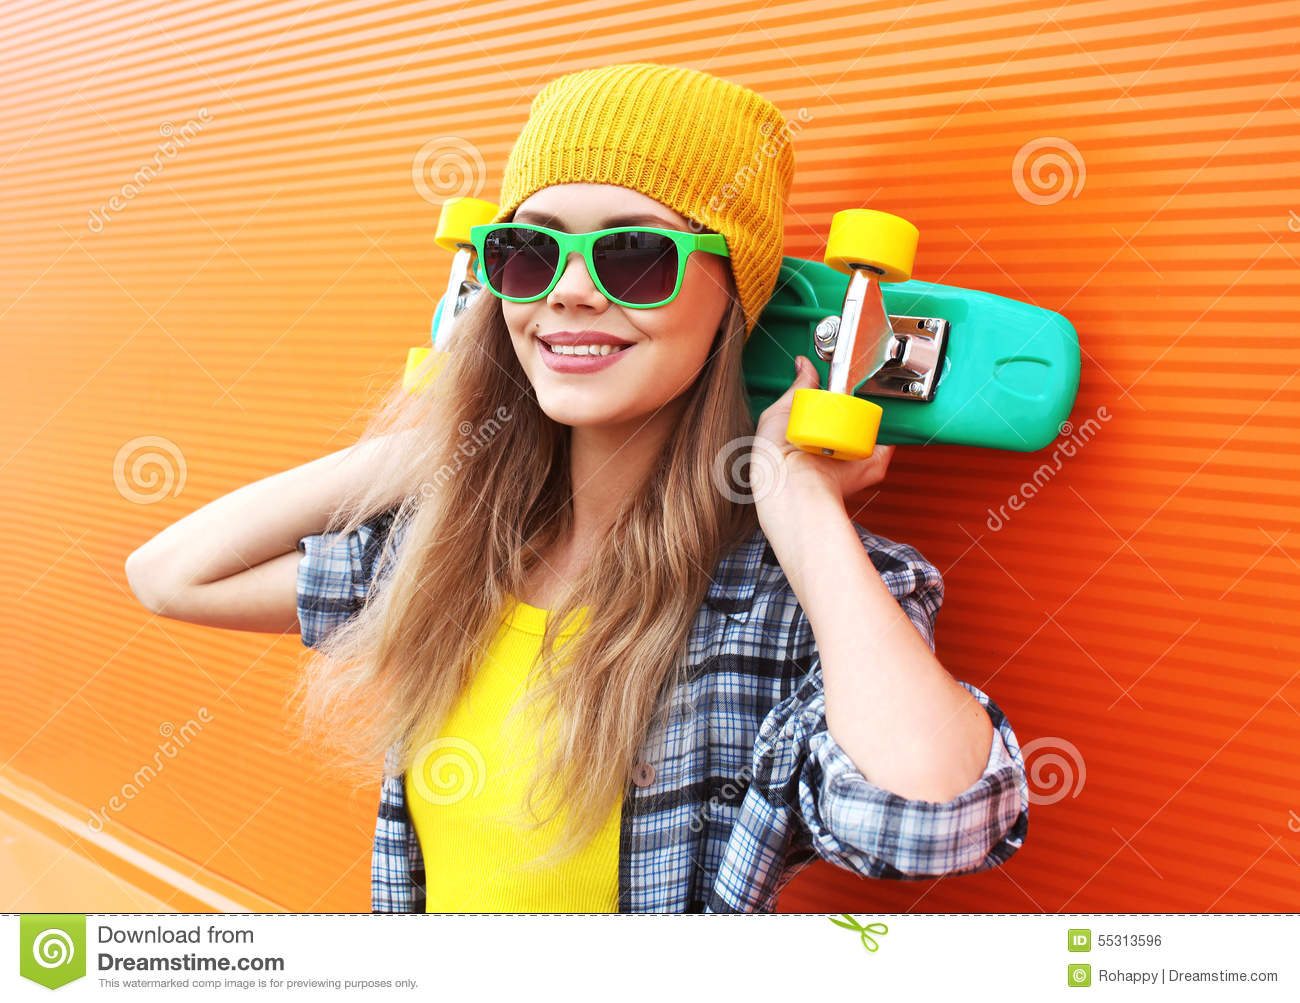 65715d4fd4e6c Fashion portrait of hipster cool girl in sunglasses with skateboard having  fun outdoors against the colorful orange wall